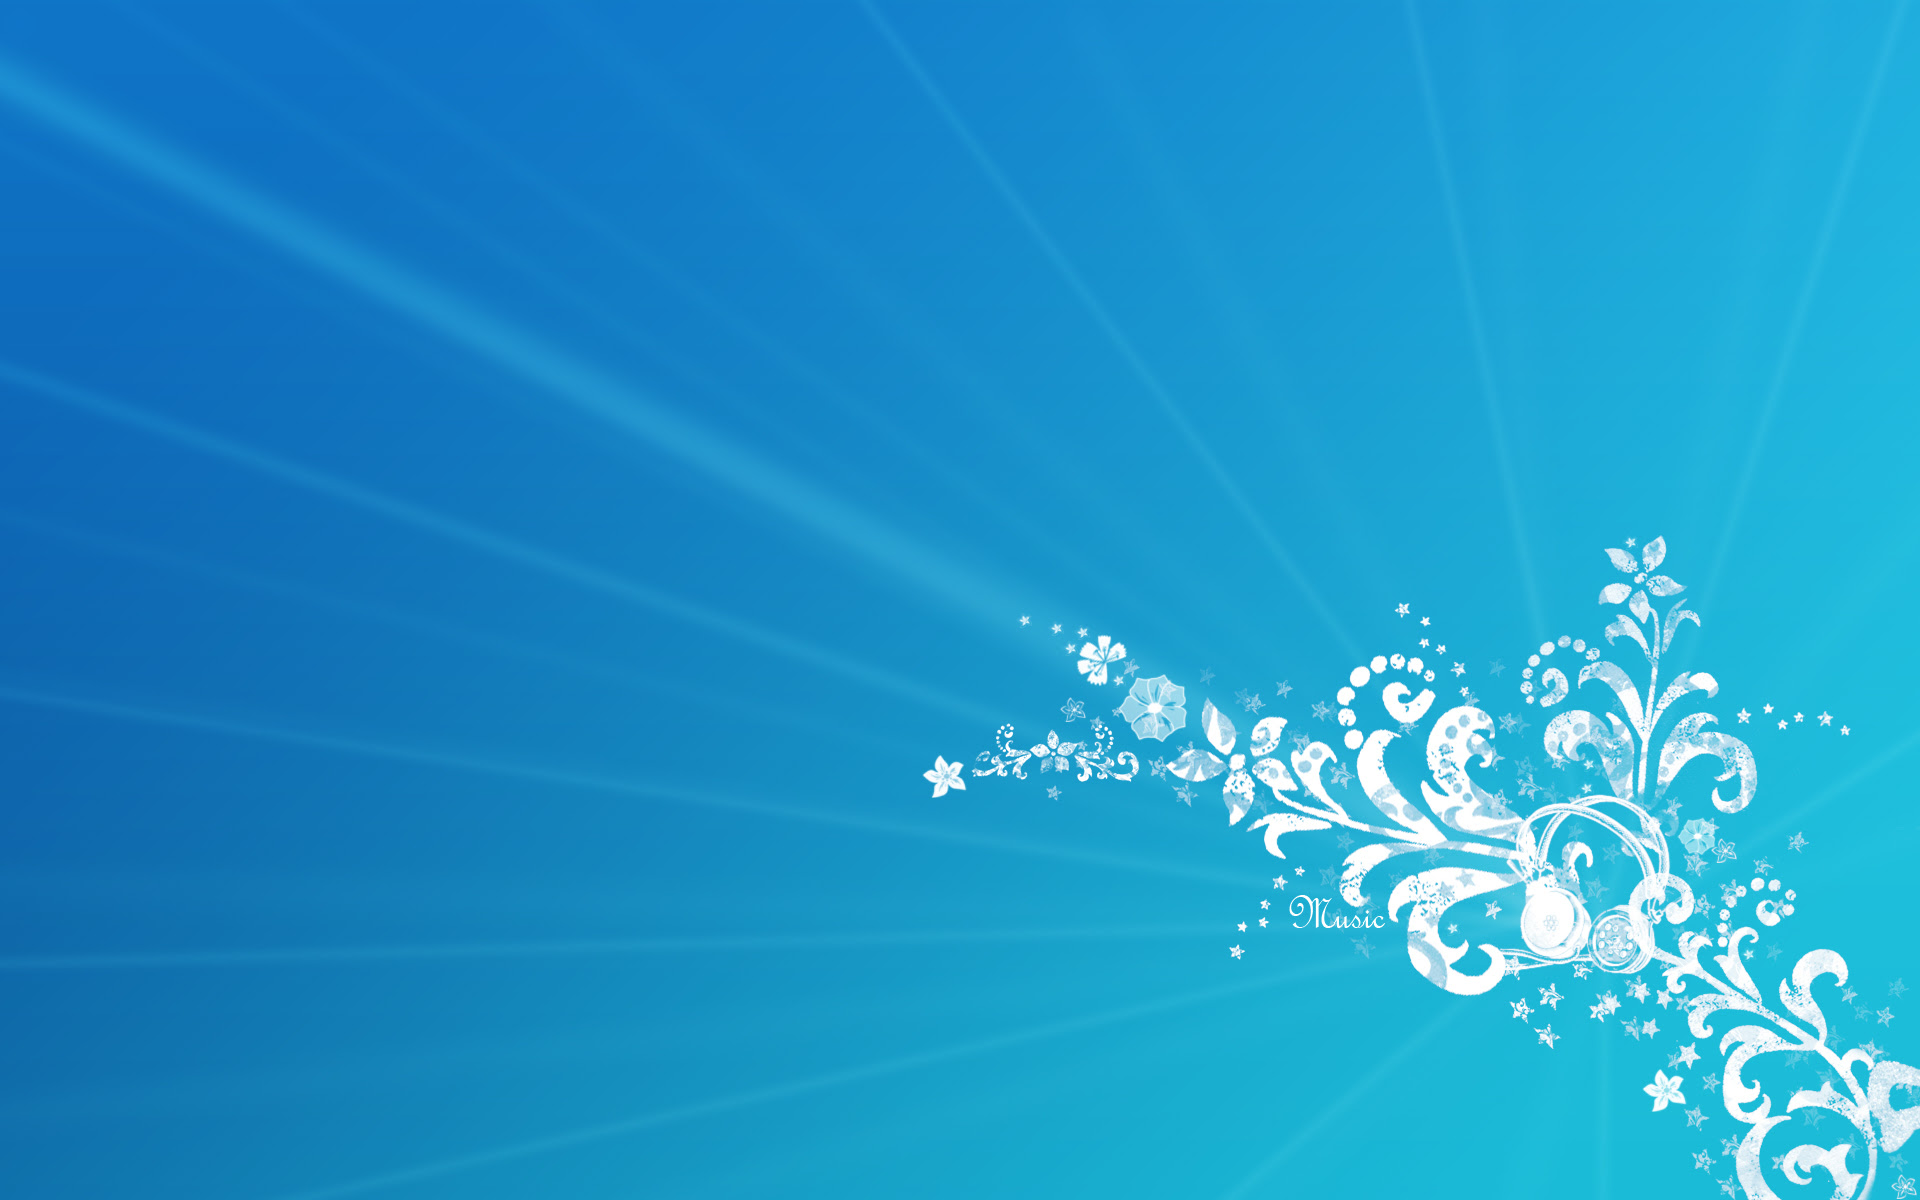 Blue Background Hd With White Design 4237519 1920x1200 All For